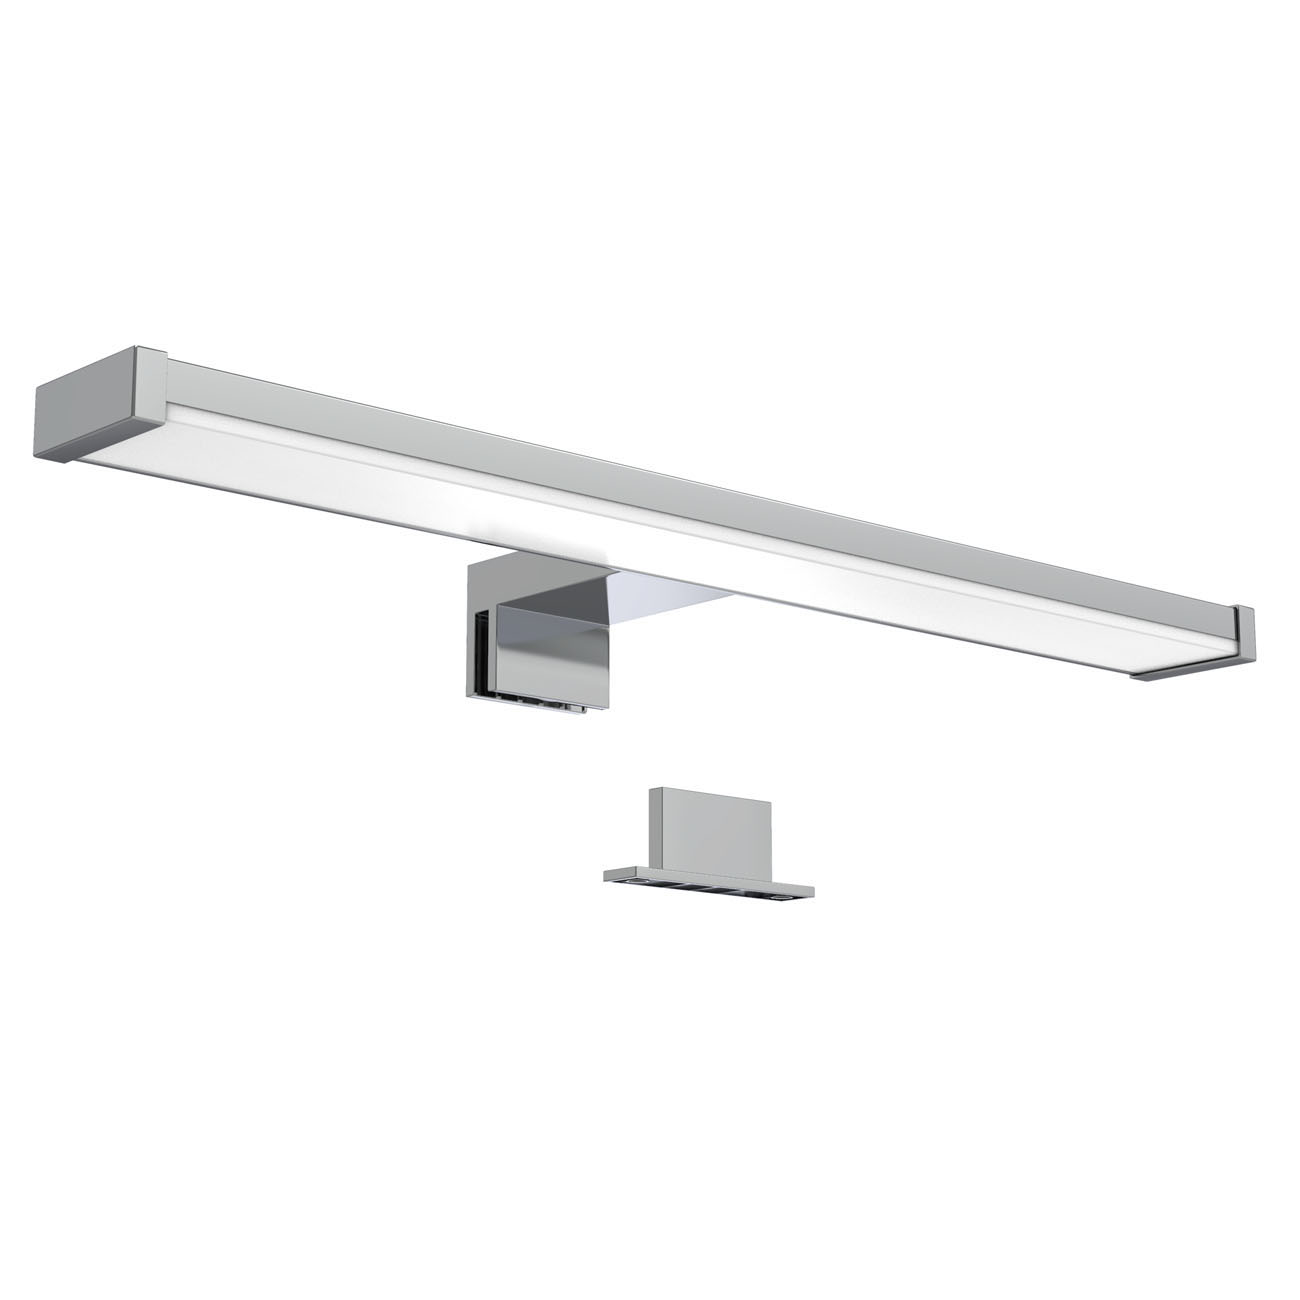 LED Spiegelleuchte Badlampe IP44 chrom